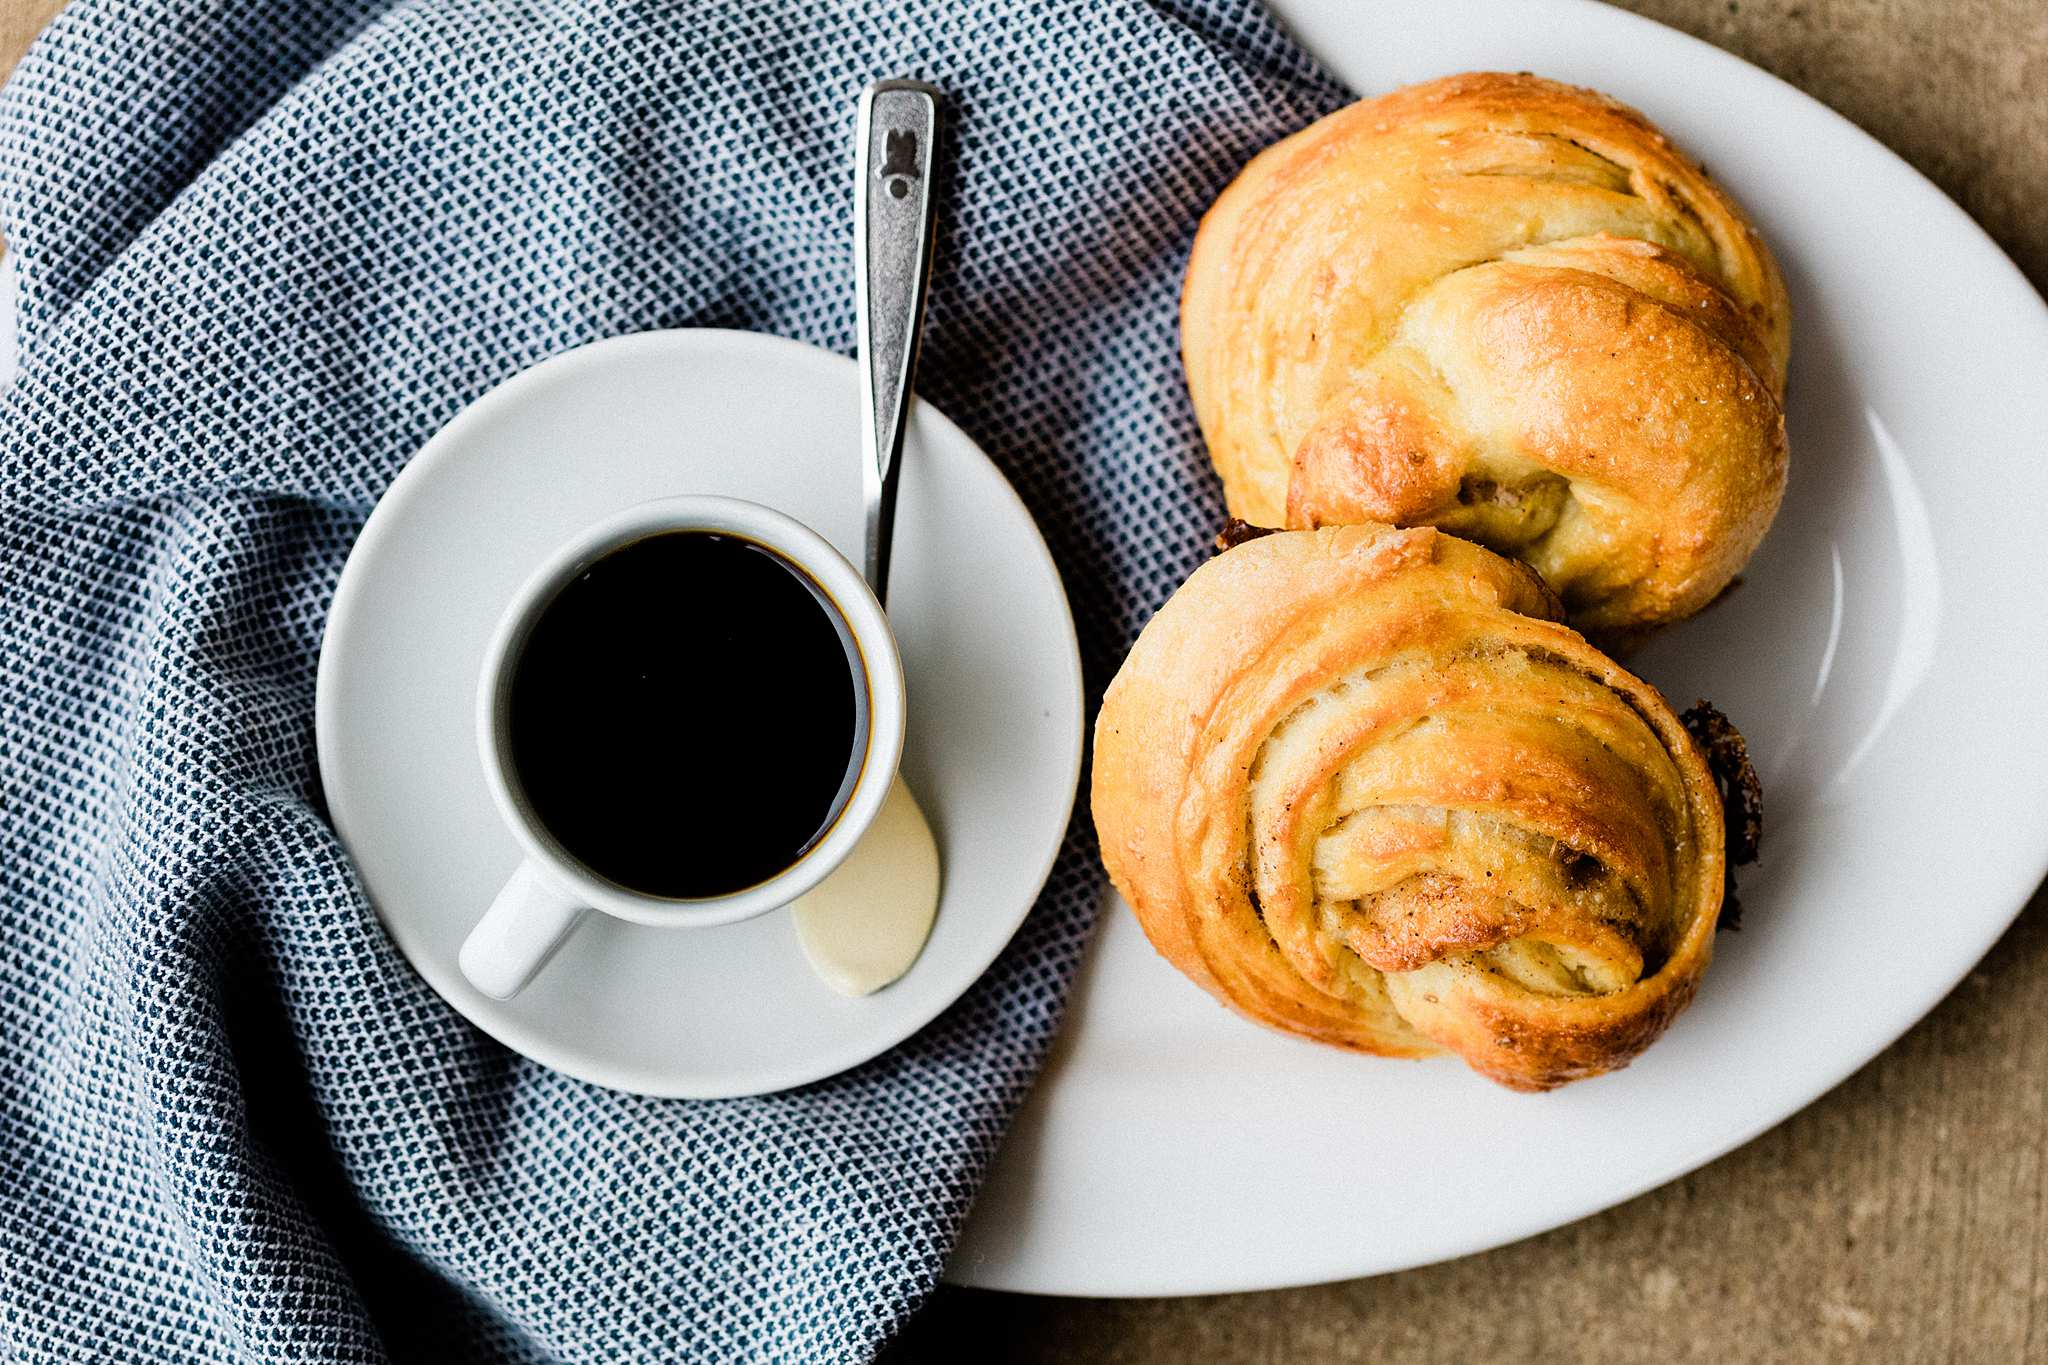 Cardamom Buns (Kardemummabullar) - Let's Taco Bout It Blog